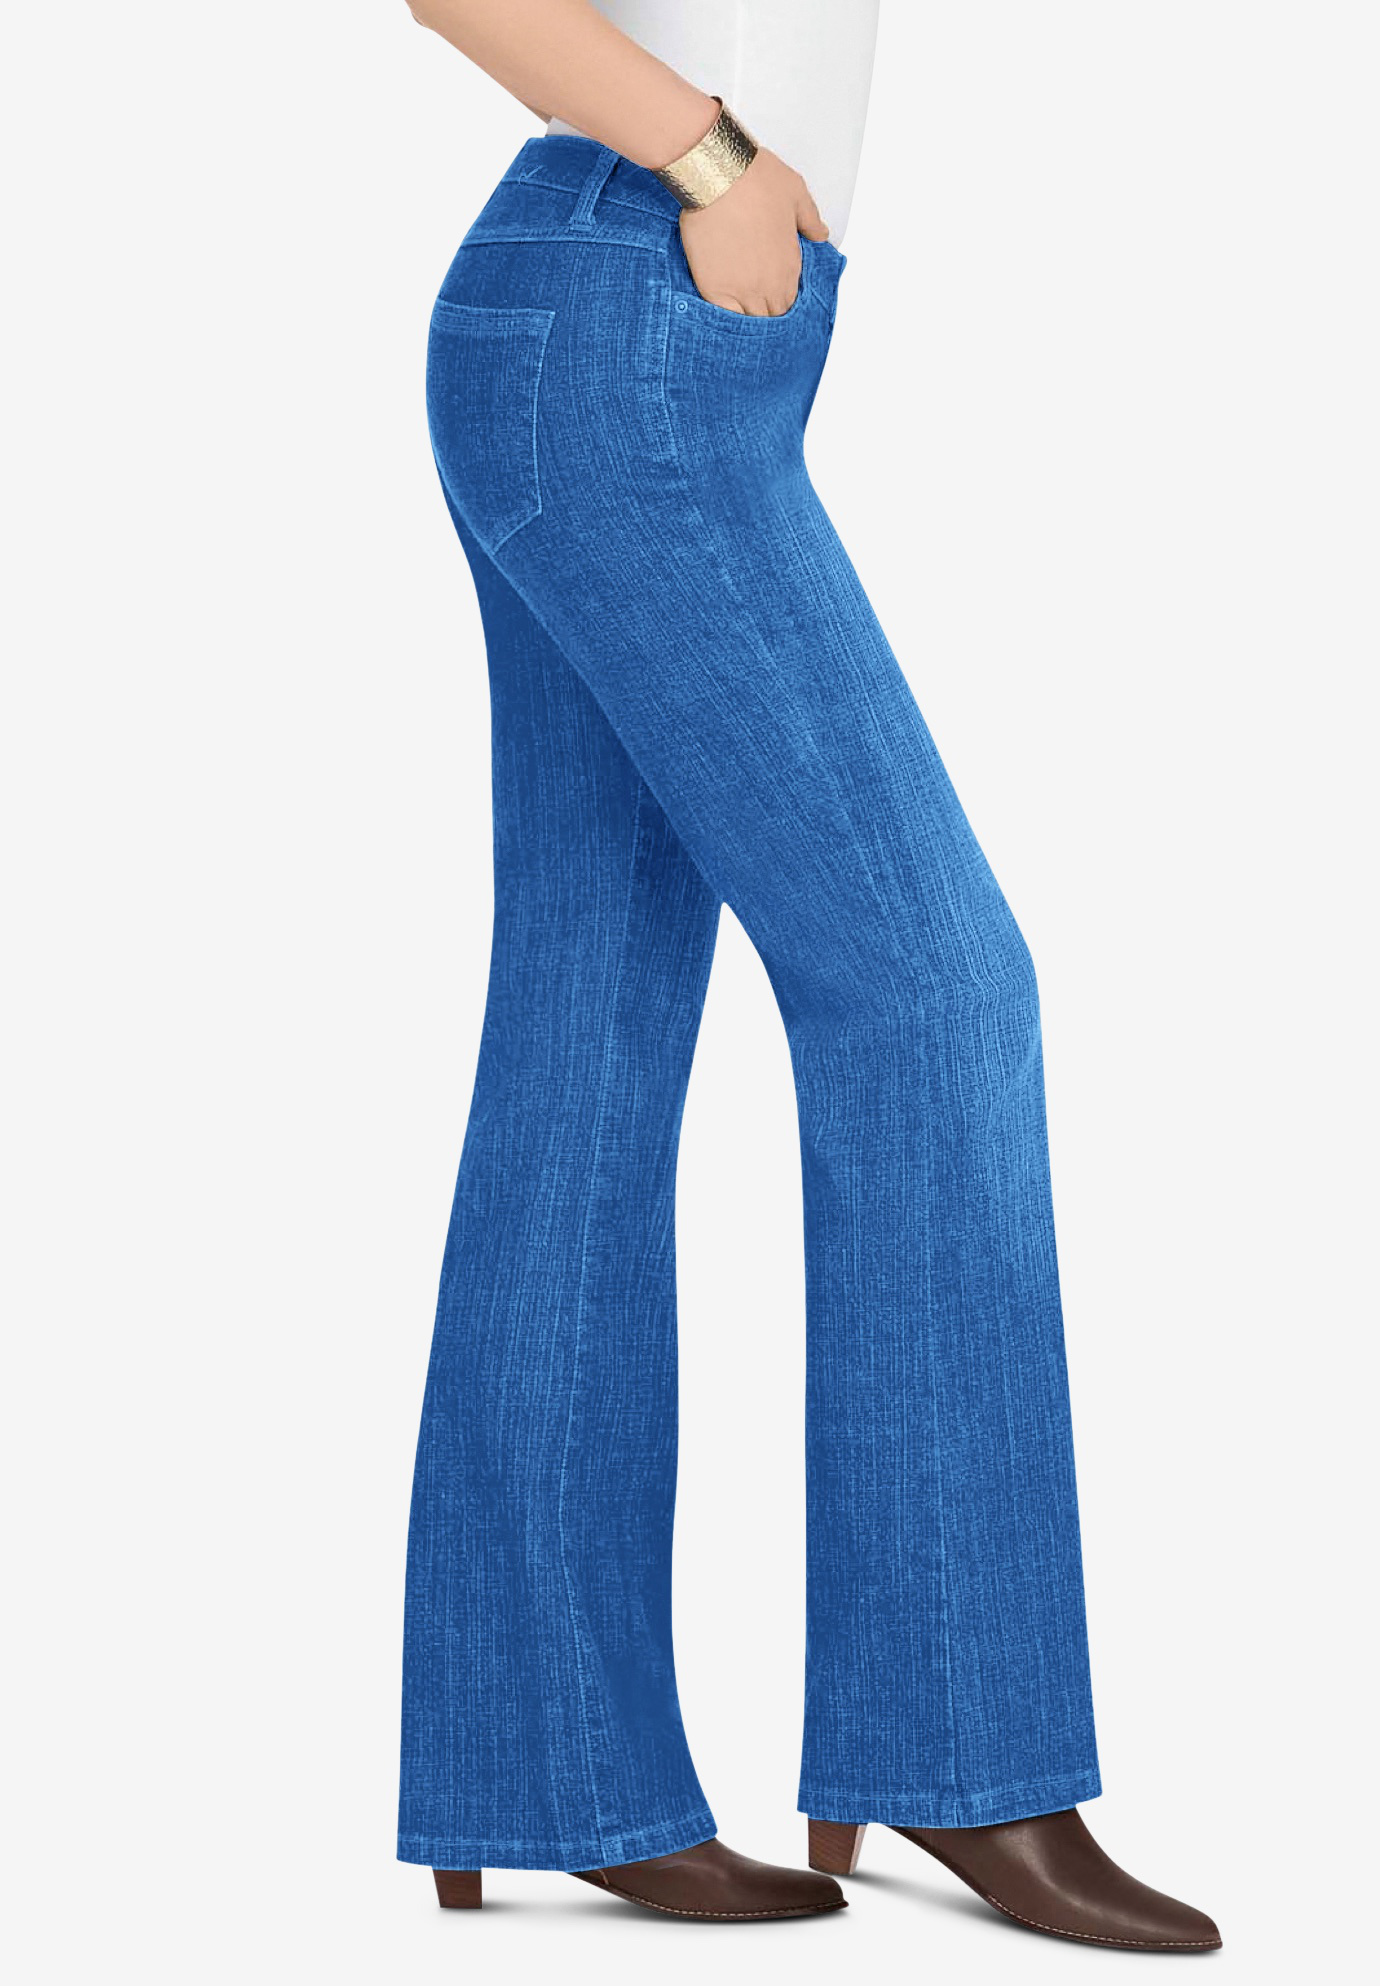 075a52febee Bootcut Jean with Invisible Stretch® by Denim 24 7®